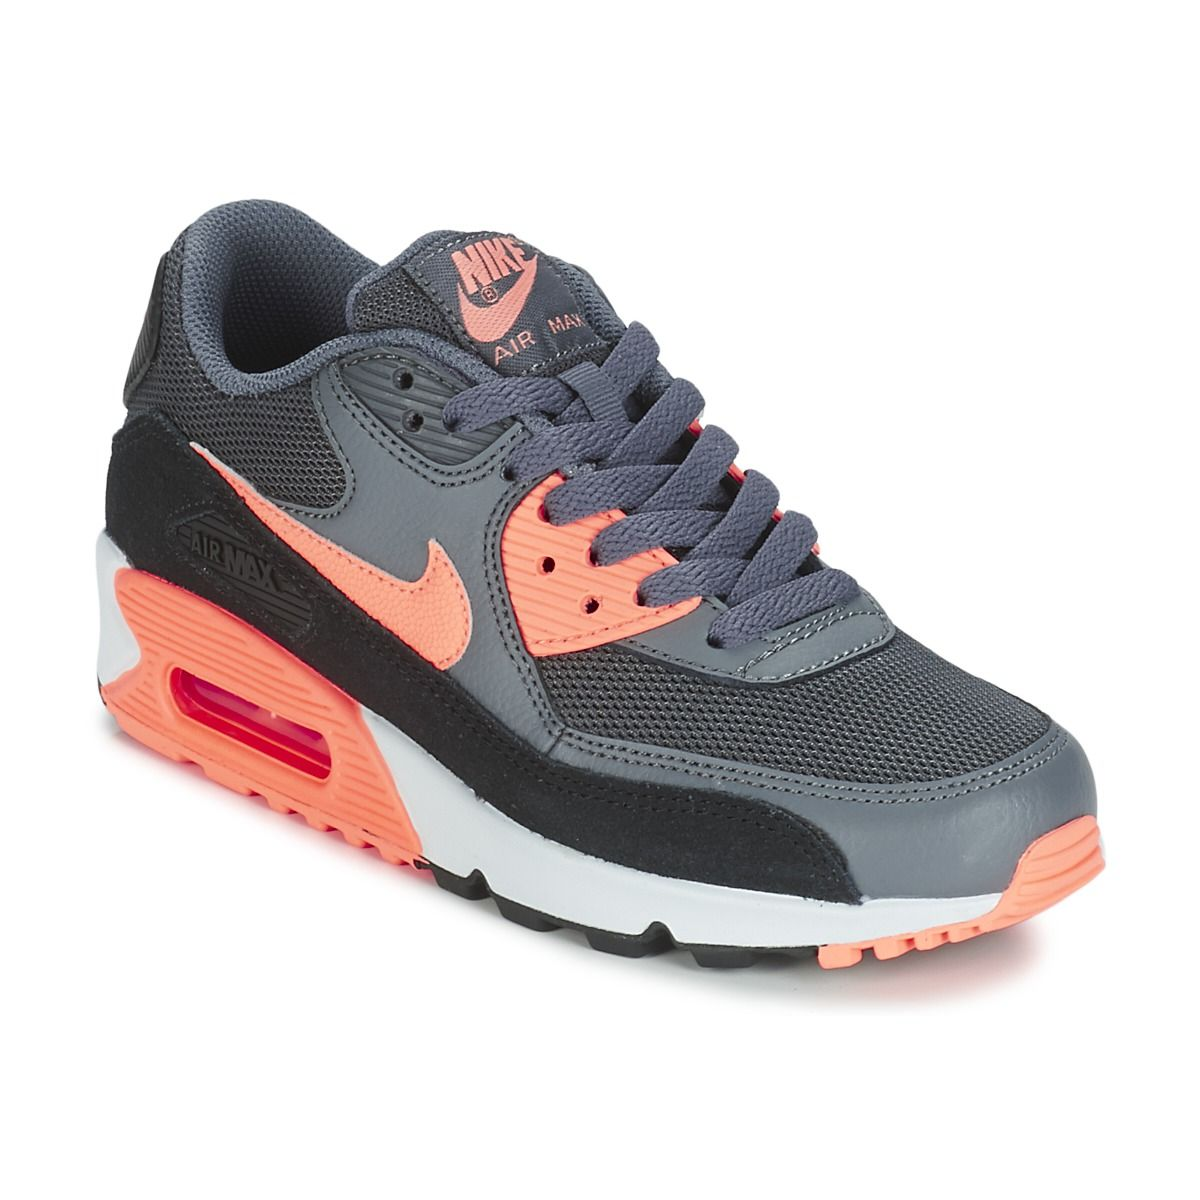 nike air max 90 essential grise rose baskets/running femme nike